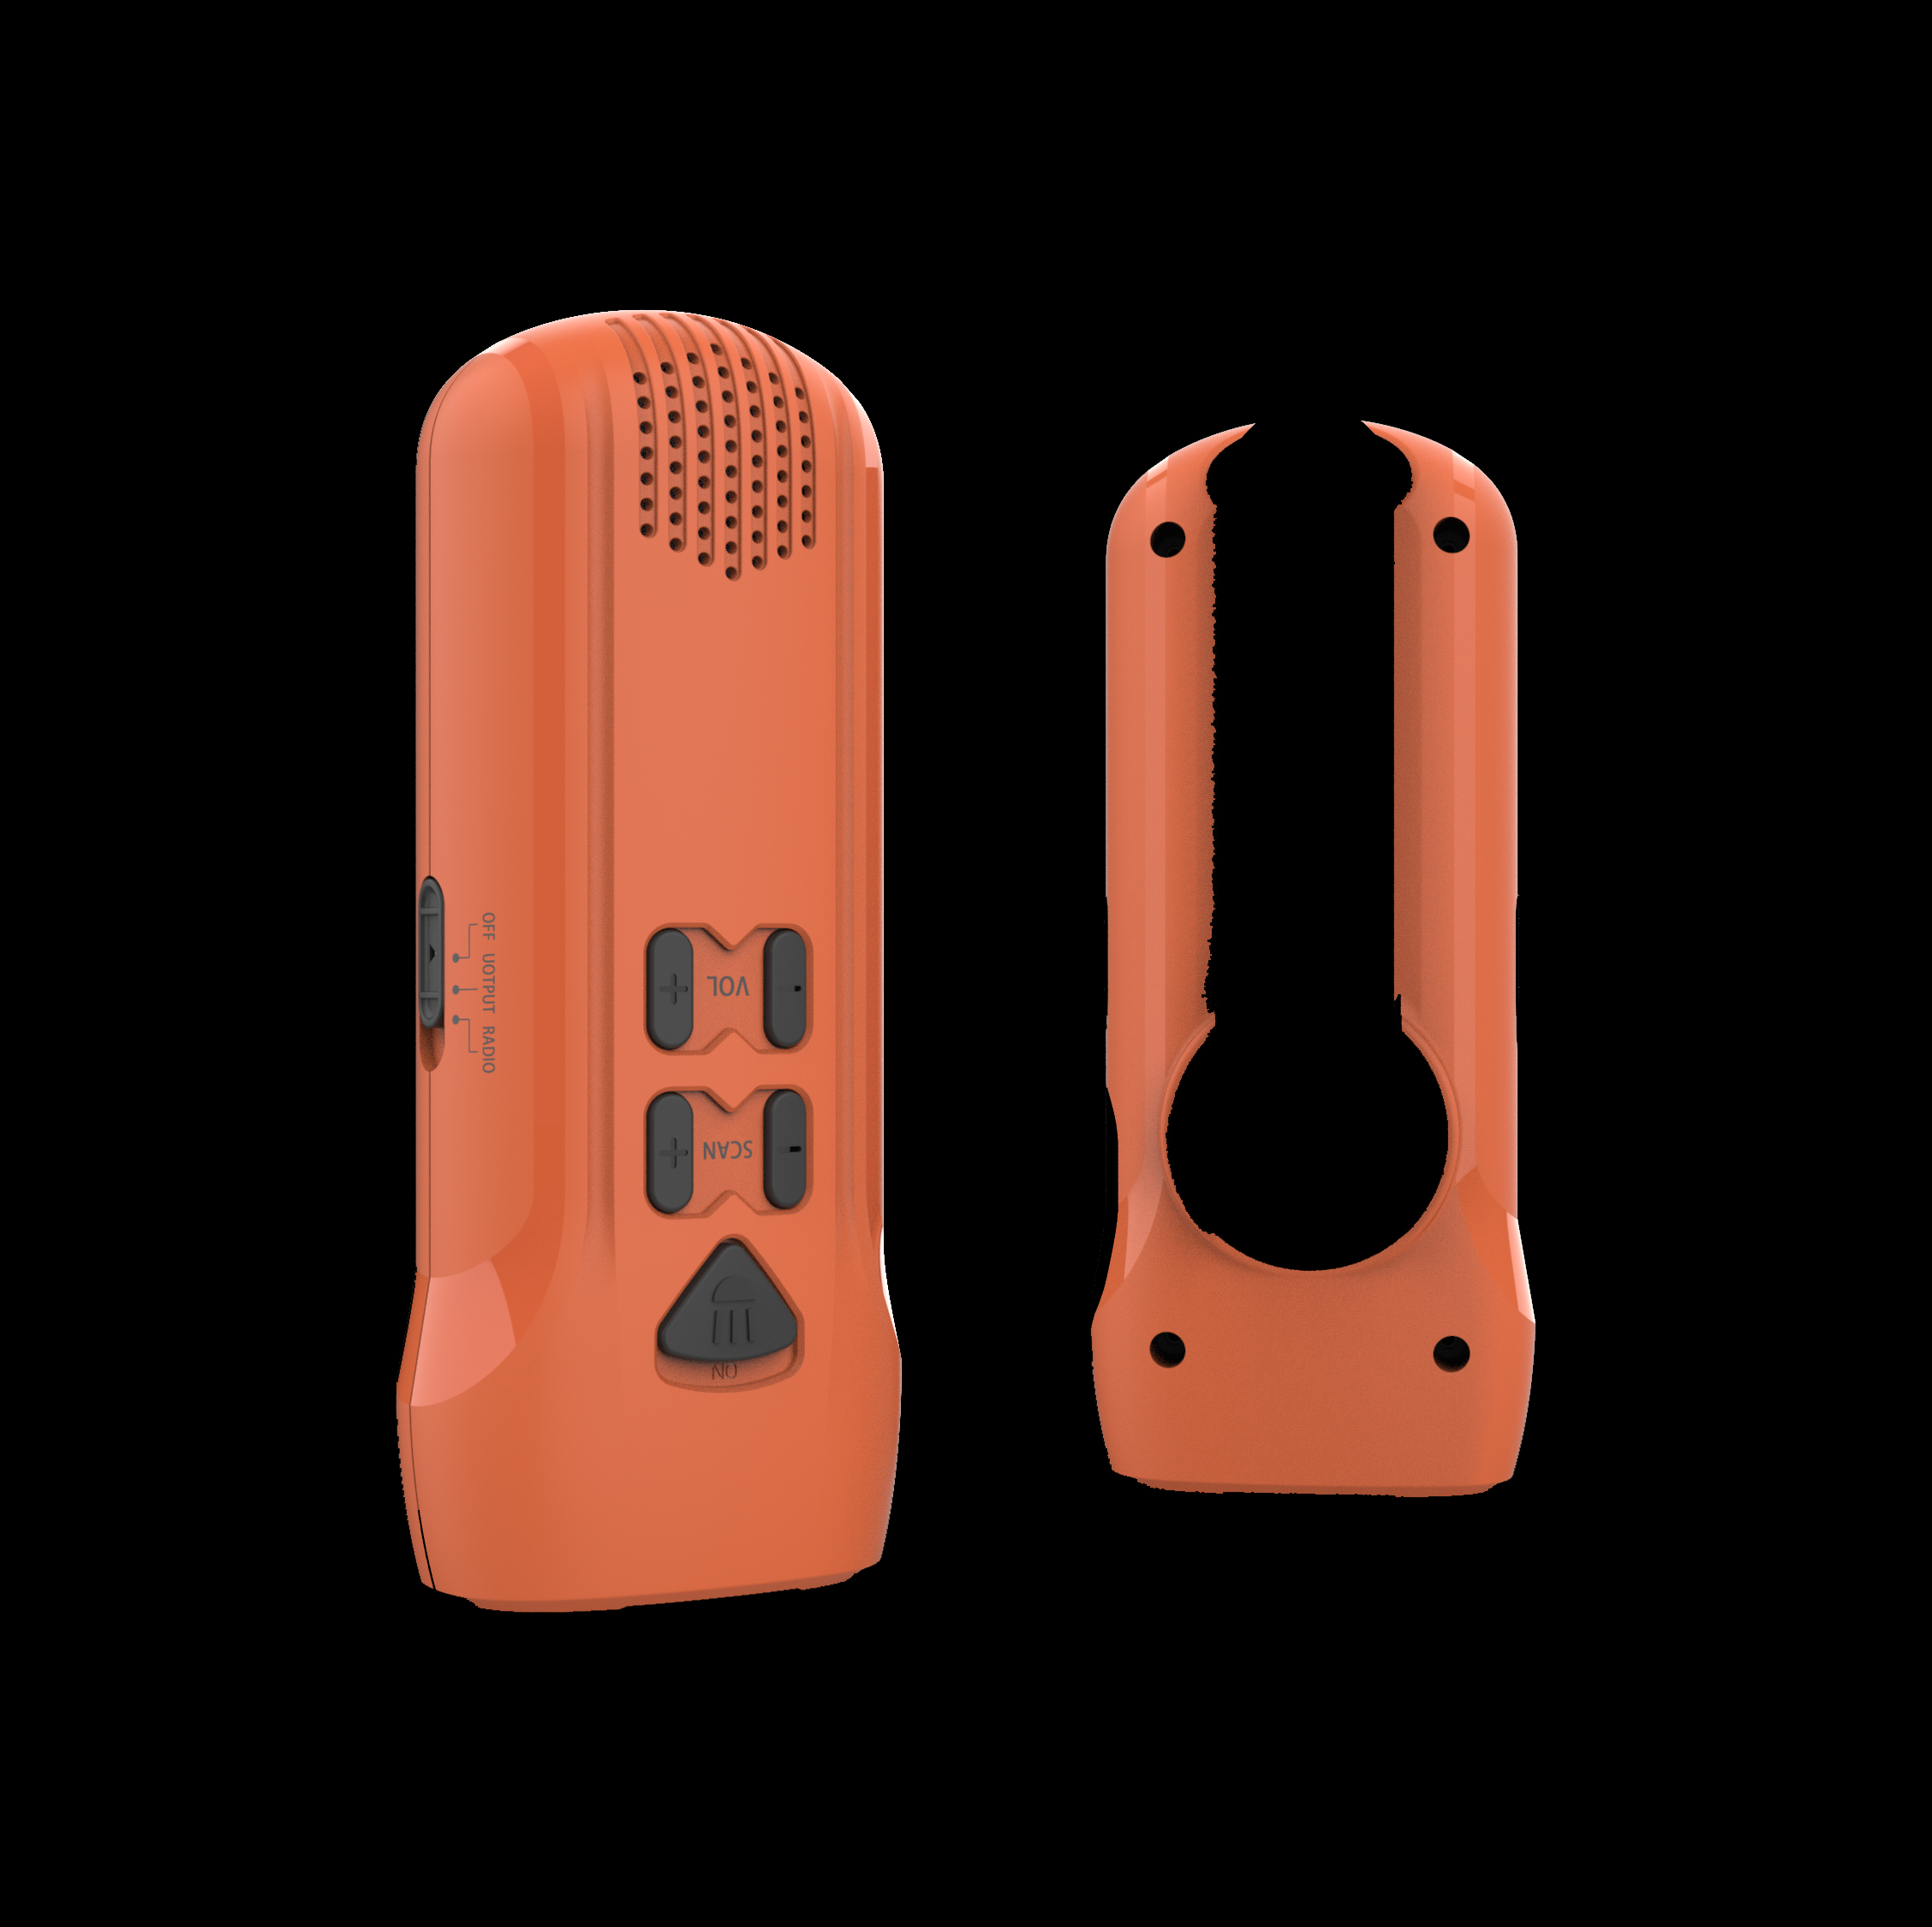 Rechargeable Emergency flashlight FM radio no AM radio pocket radio torch light